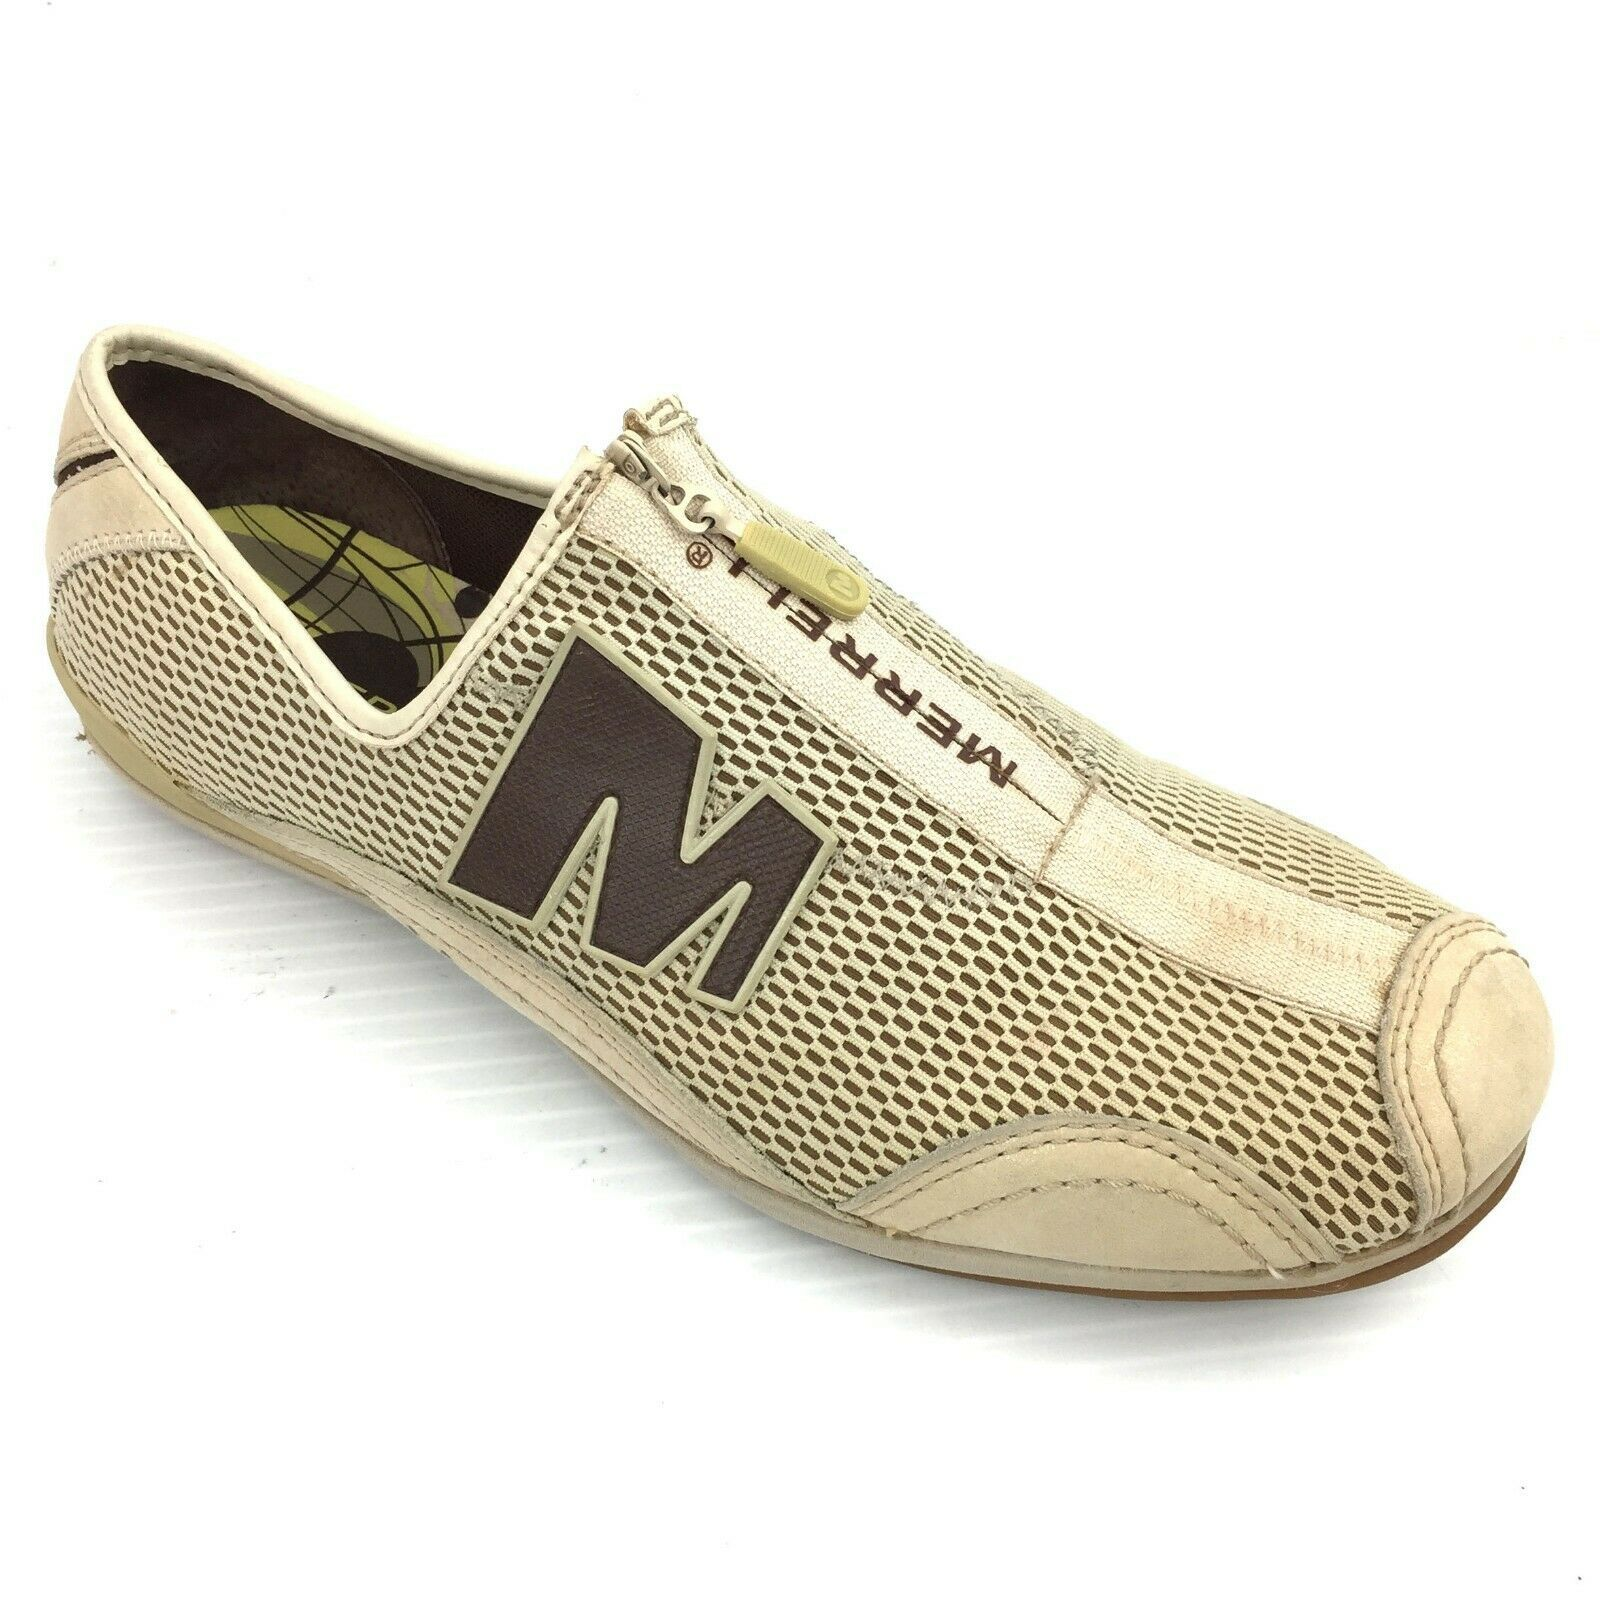 "MERRELL ""Arabesque"" Taupe Mesh & Leather Athletic Casual Comfort Zip Shoes 7.5"